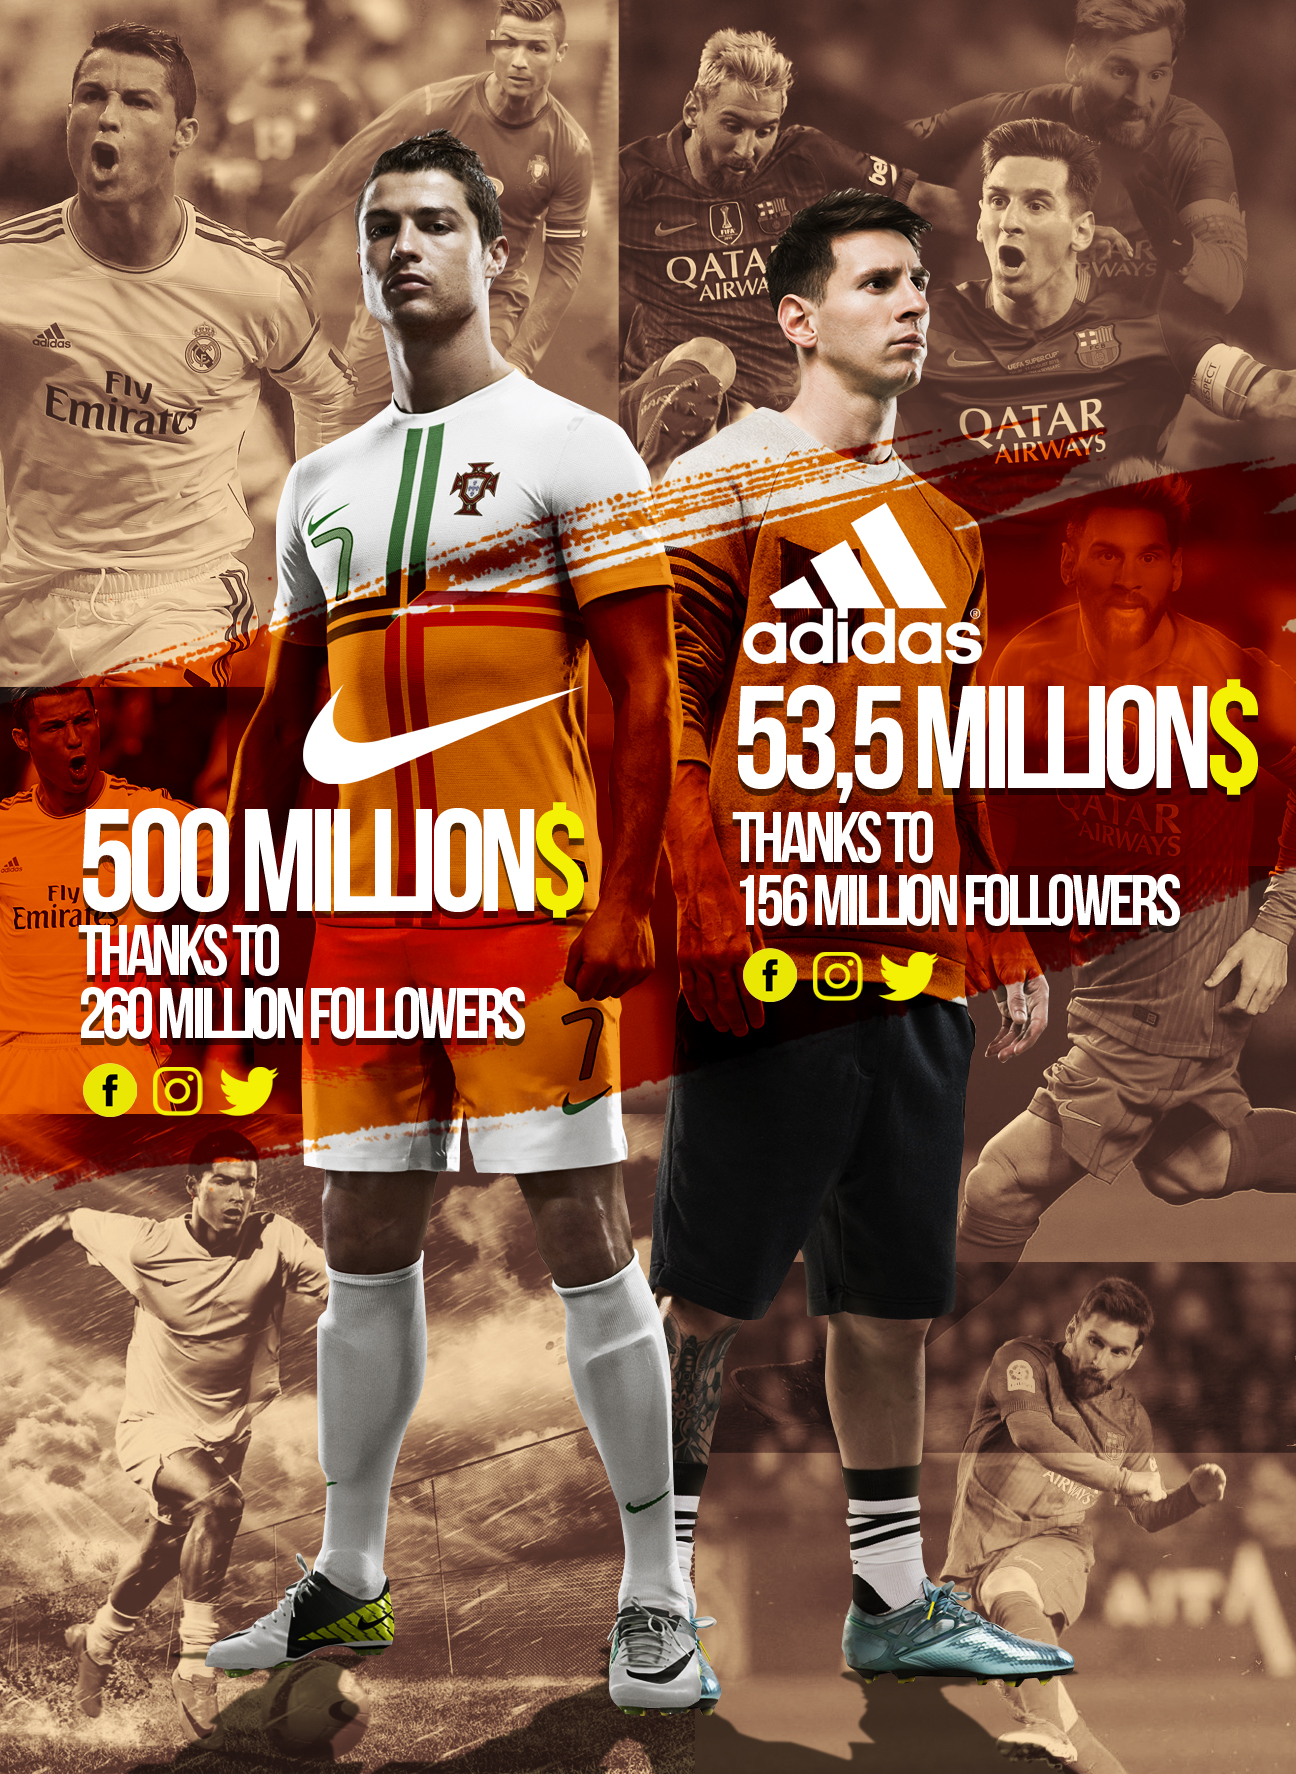 Cristiano Ronaldo and Lionel Messi battling on social media - By AidyStudio